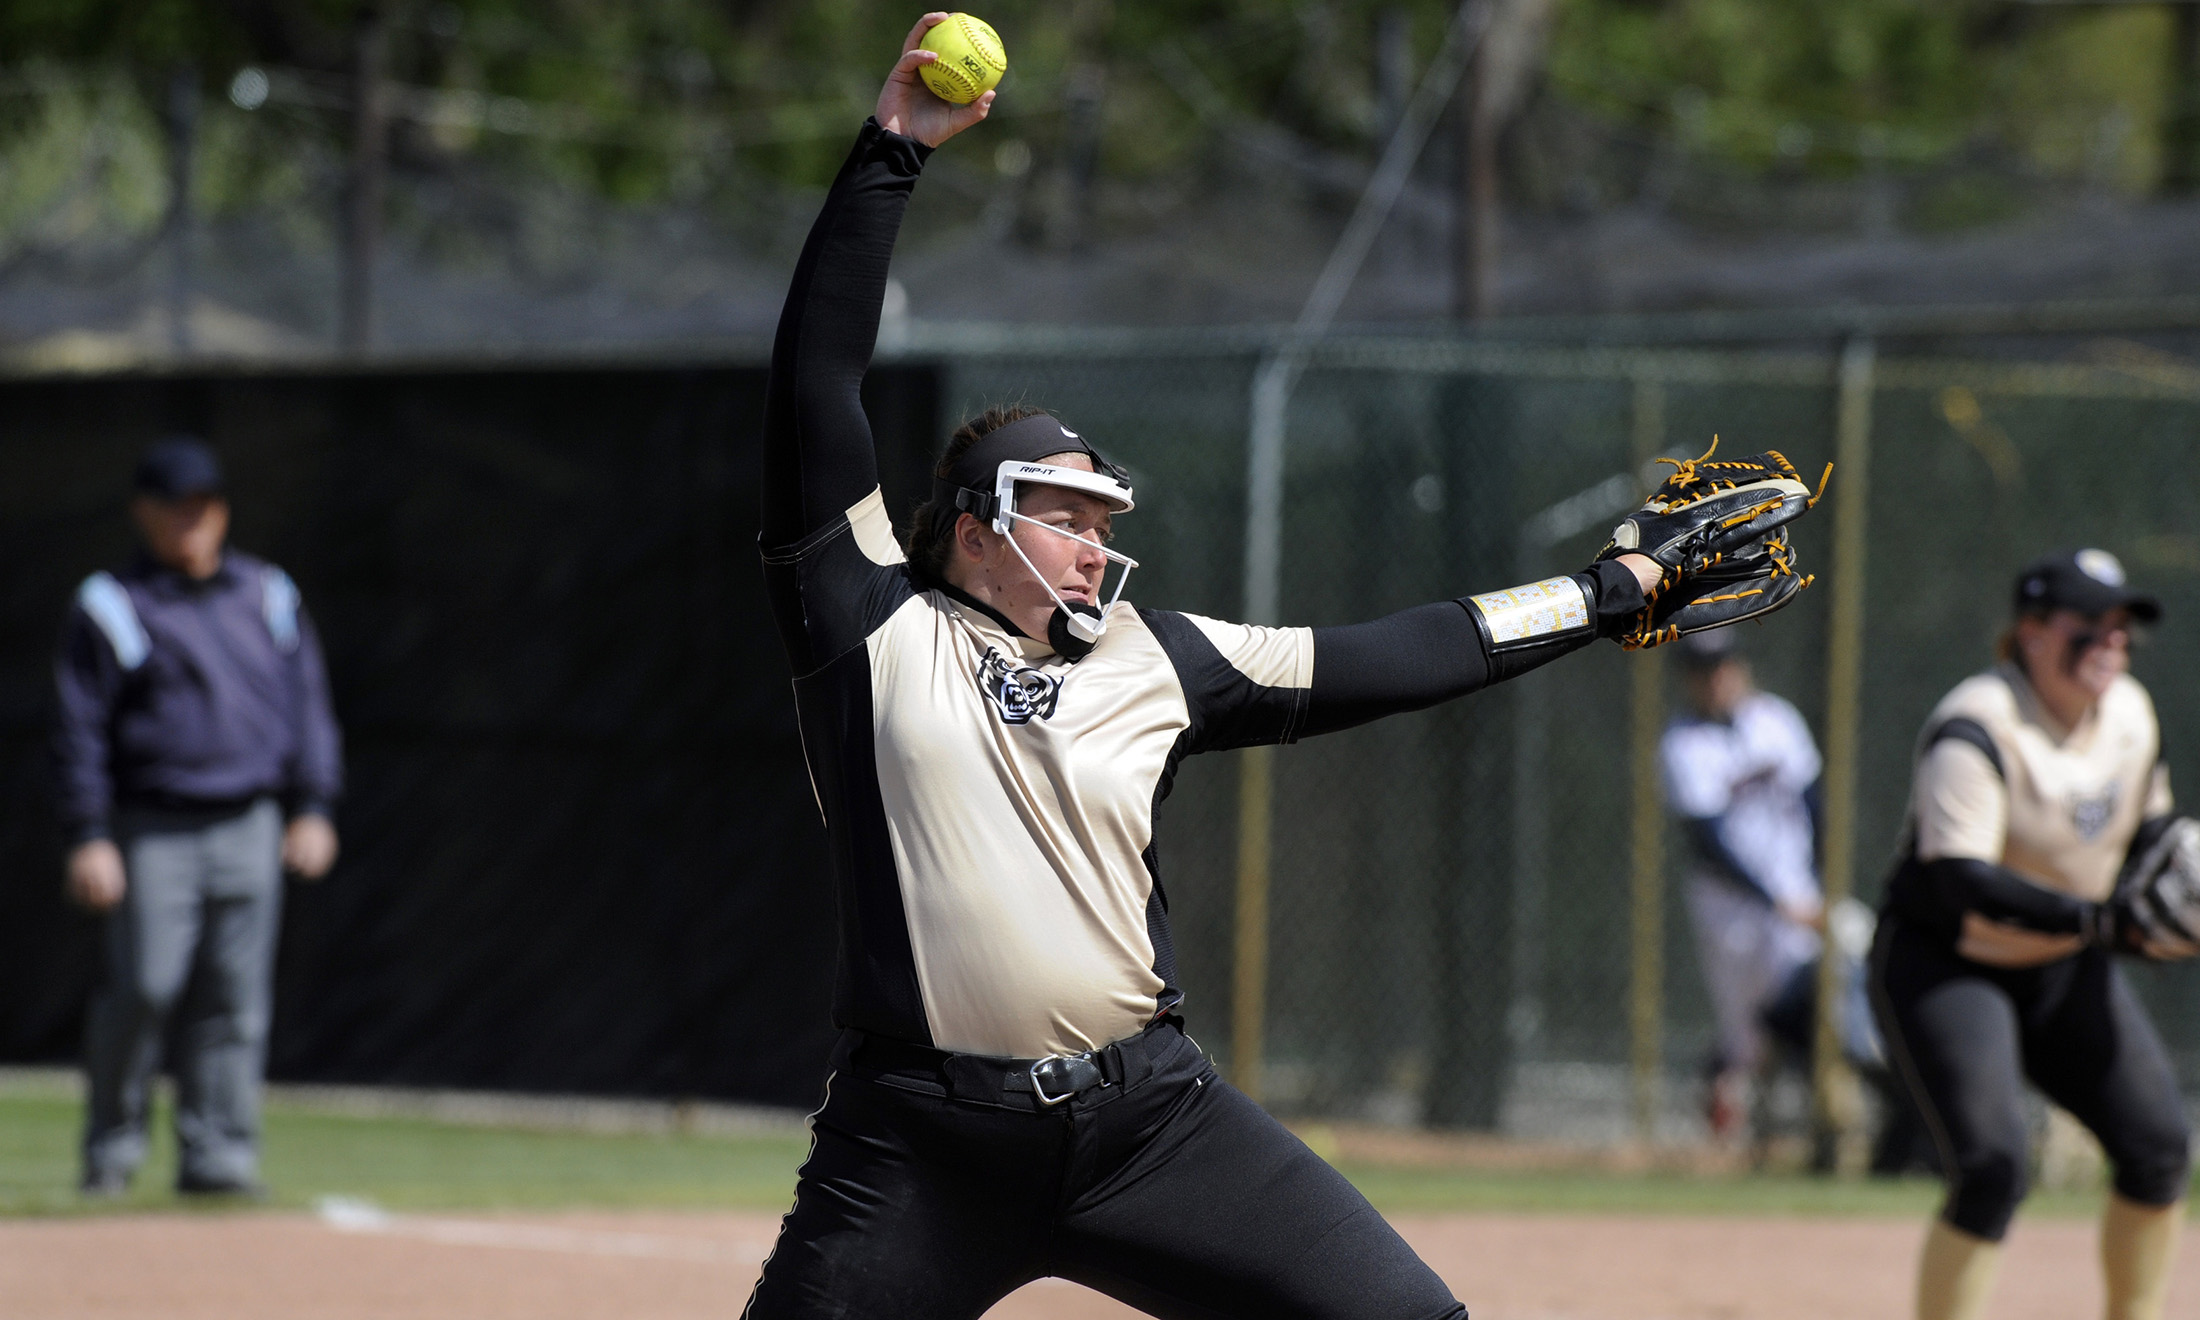 Oakland University softball star Erin Kownacki throws a pitch